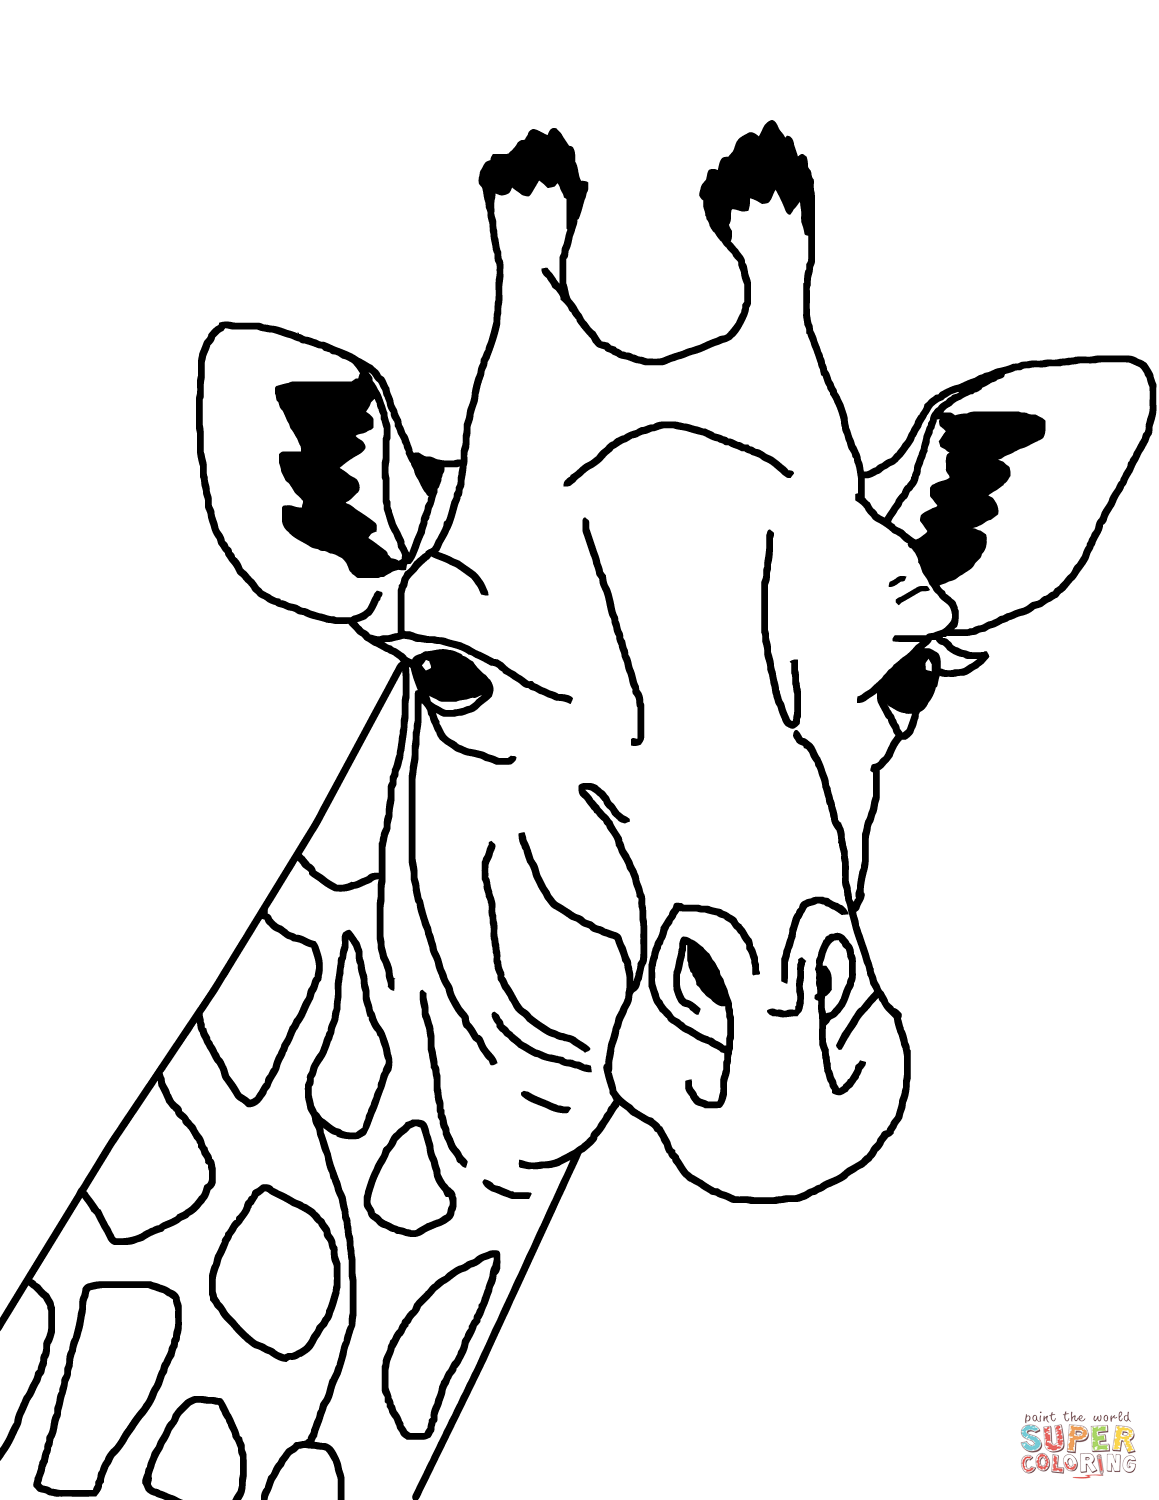 giraffe face coloring pages 17 best images about kid stuff on pinterest digital pages giraffe face coloring